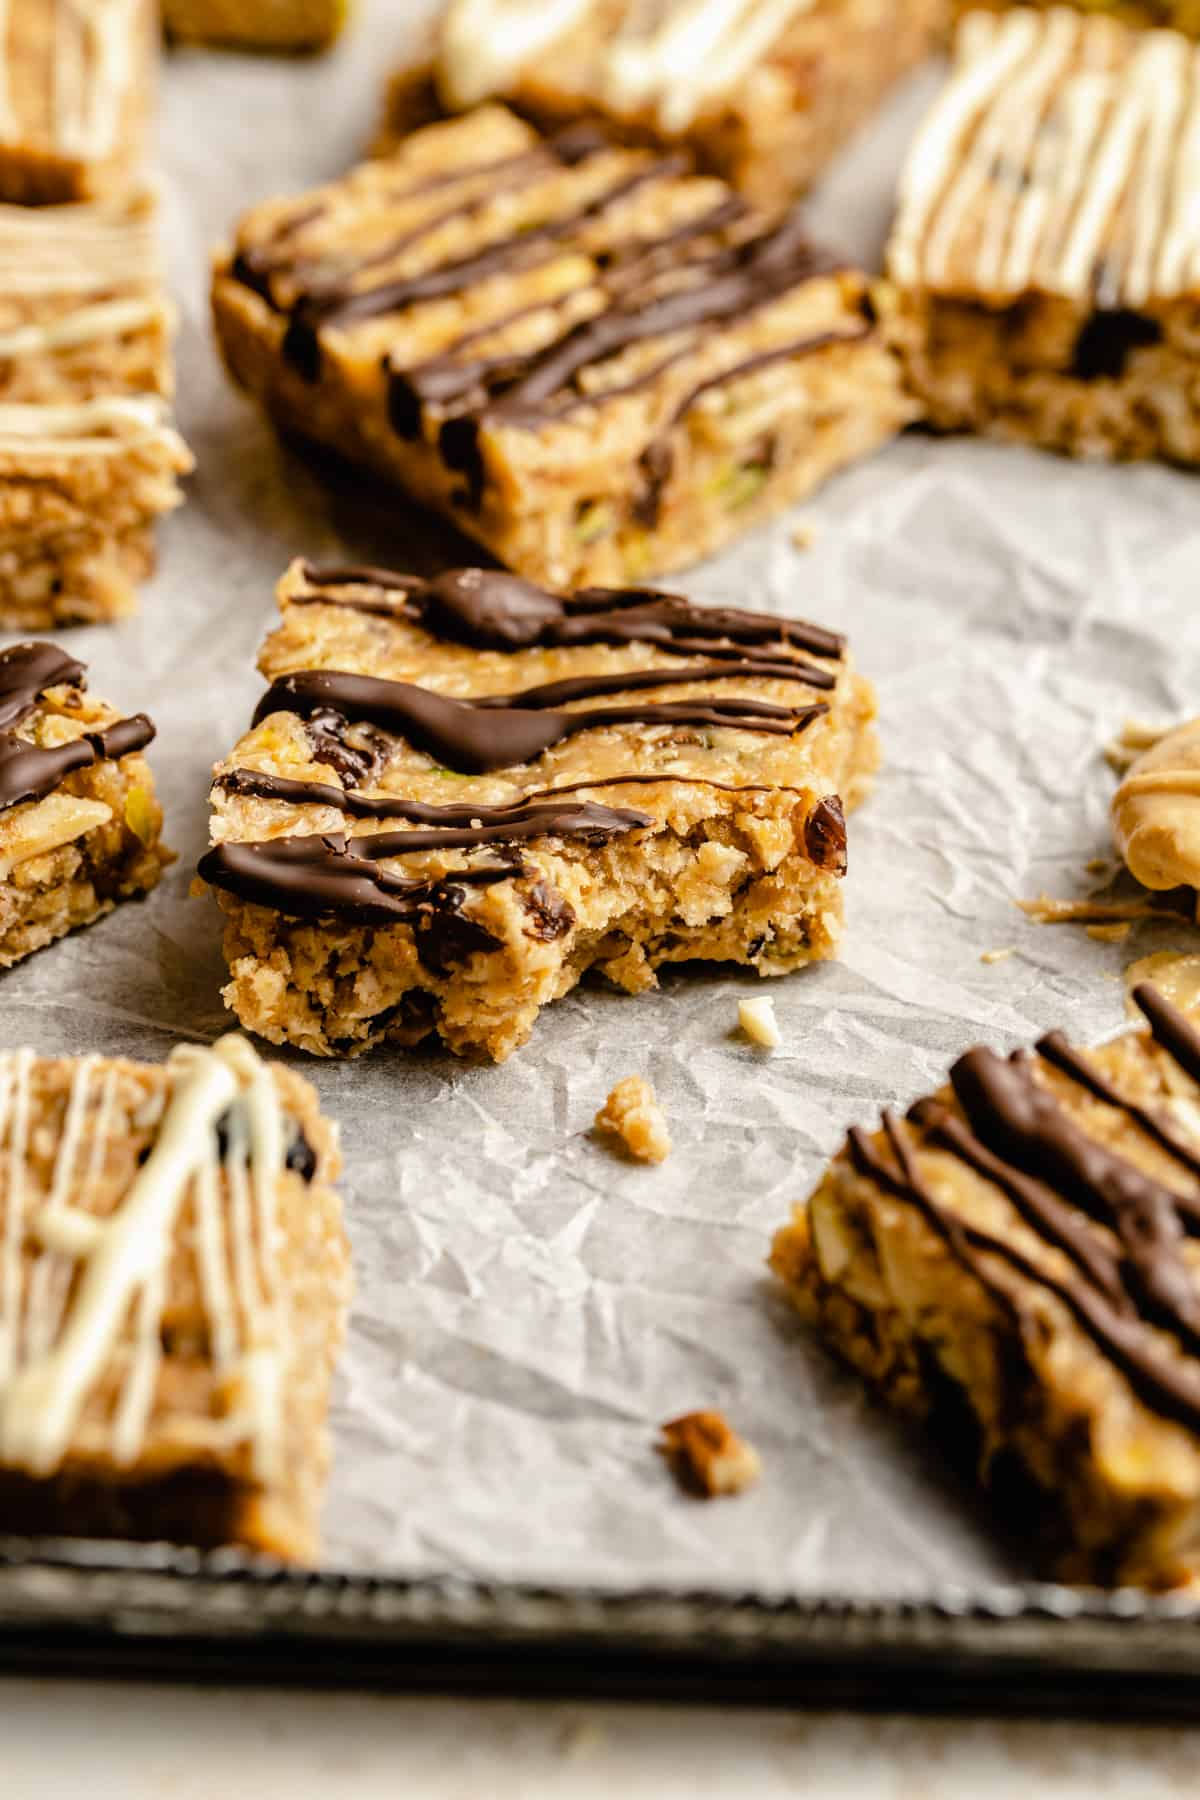 granola bars drizzled with chocolate on a piece of crumpled parchment paper